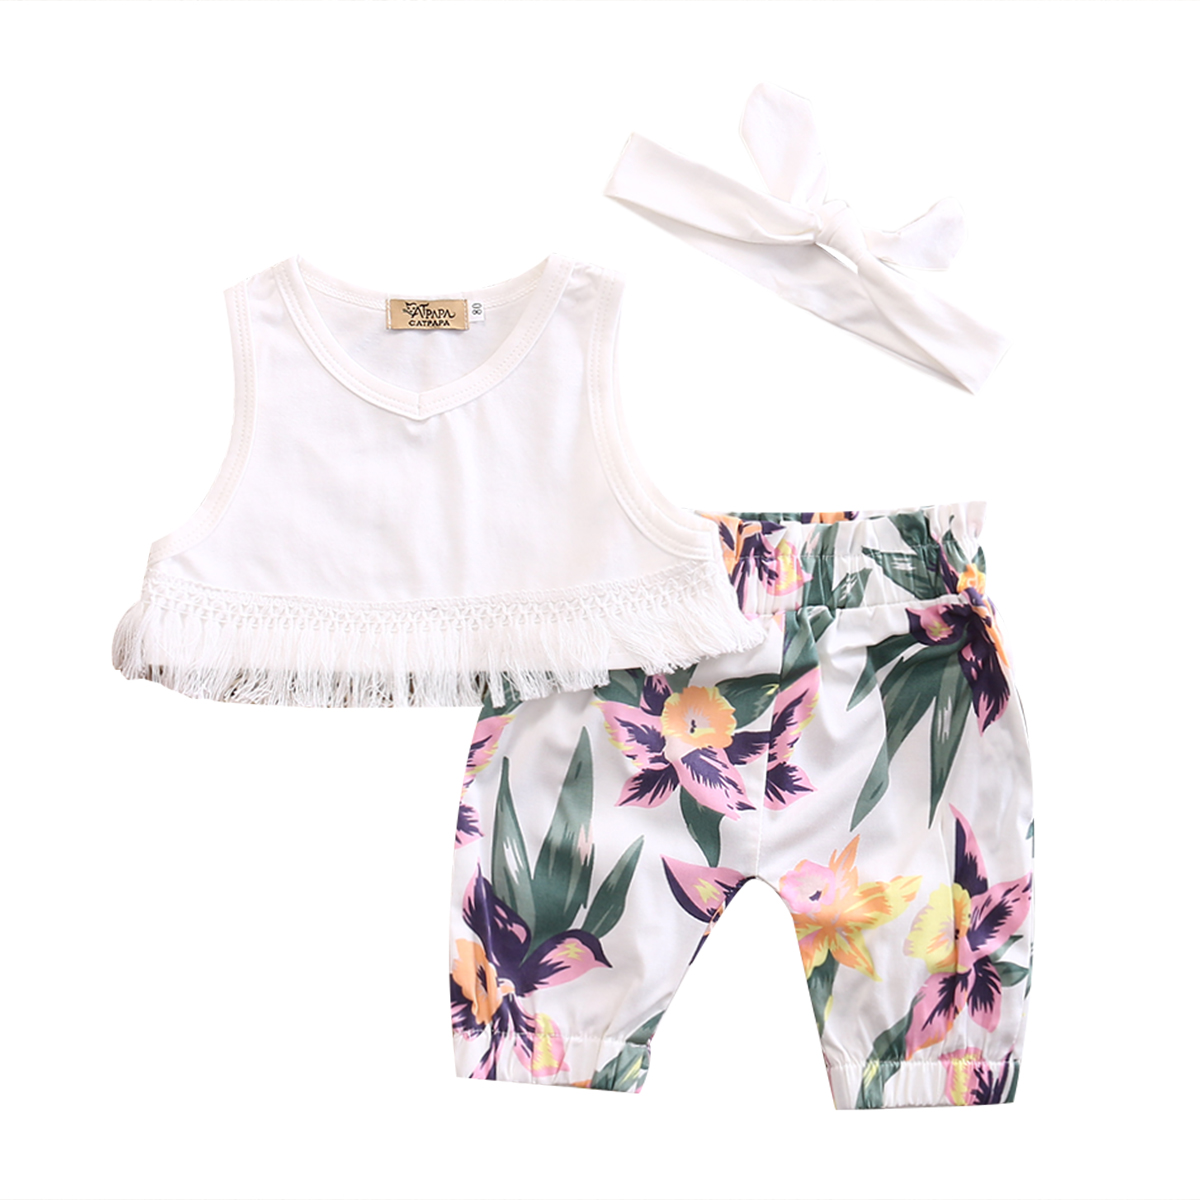 3PCS set Cute Newborn Baby Girl Clothes Sleeveless Tops Pants Headband Outfit Sets-in Clothing ...